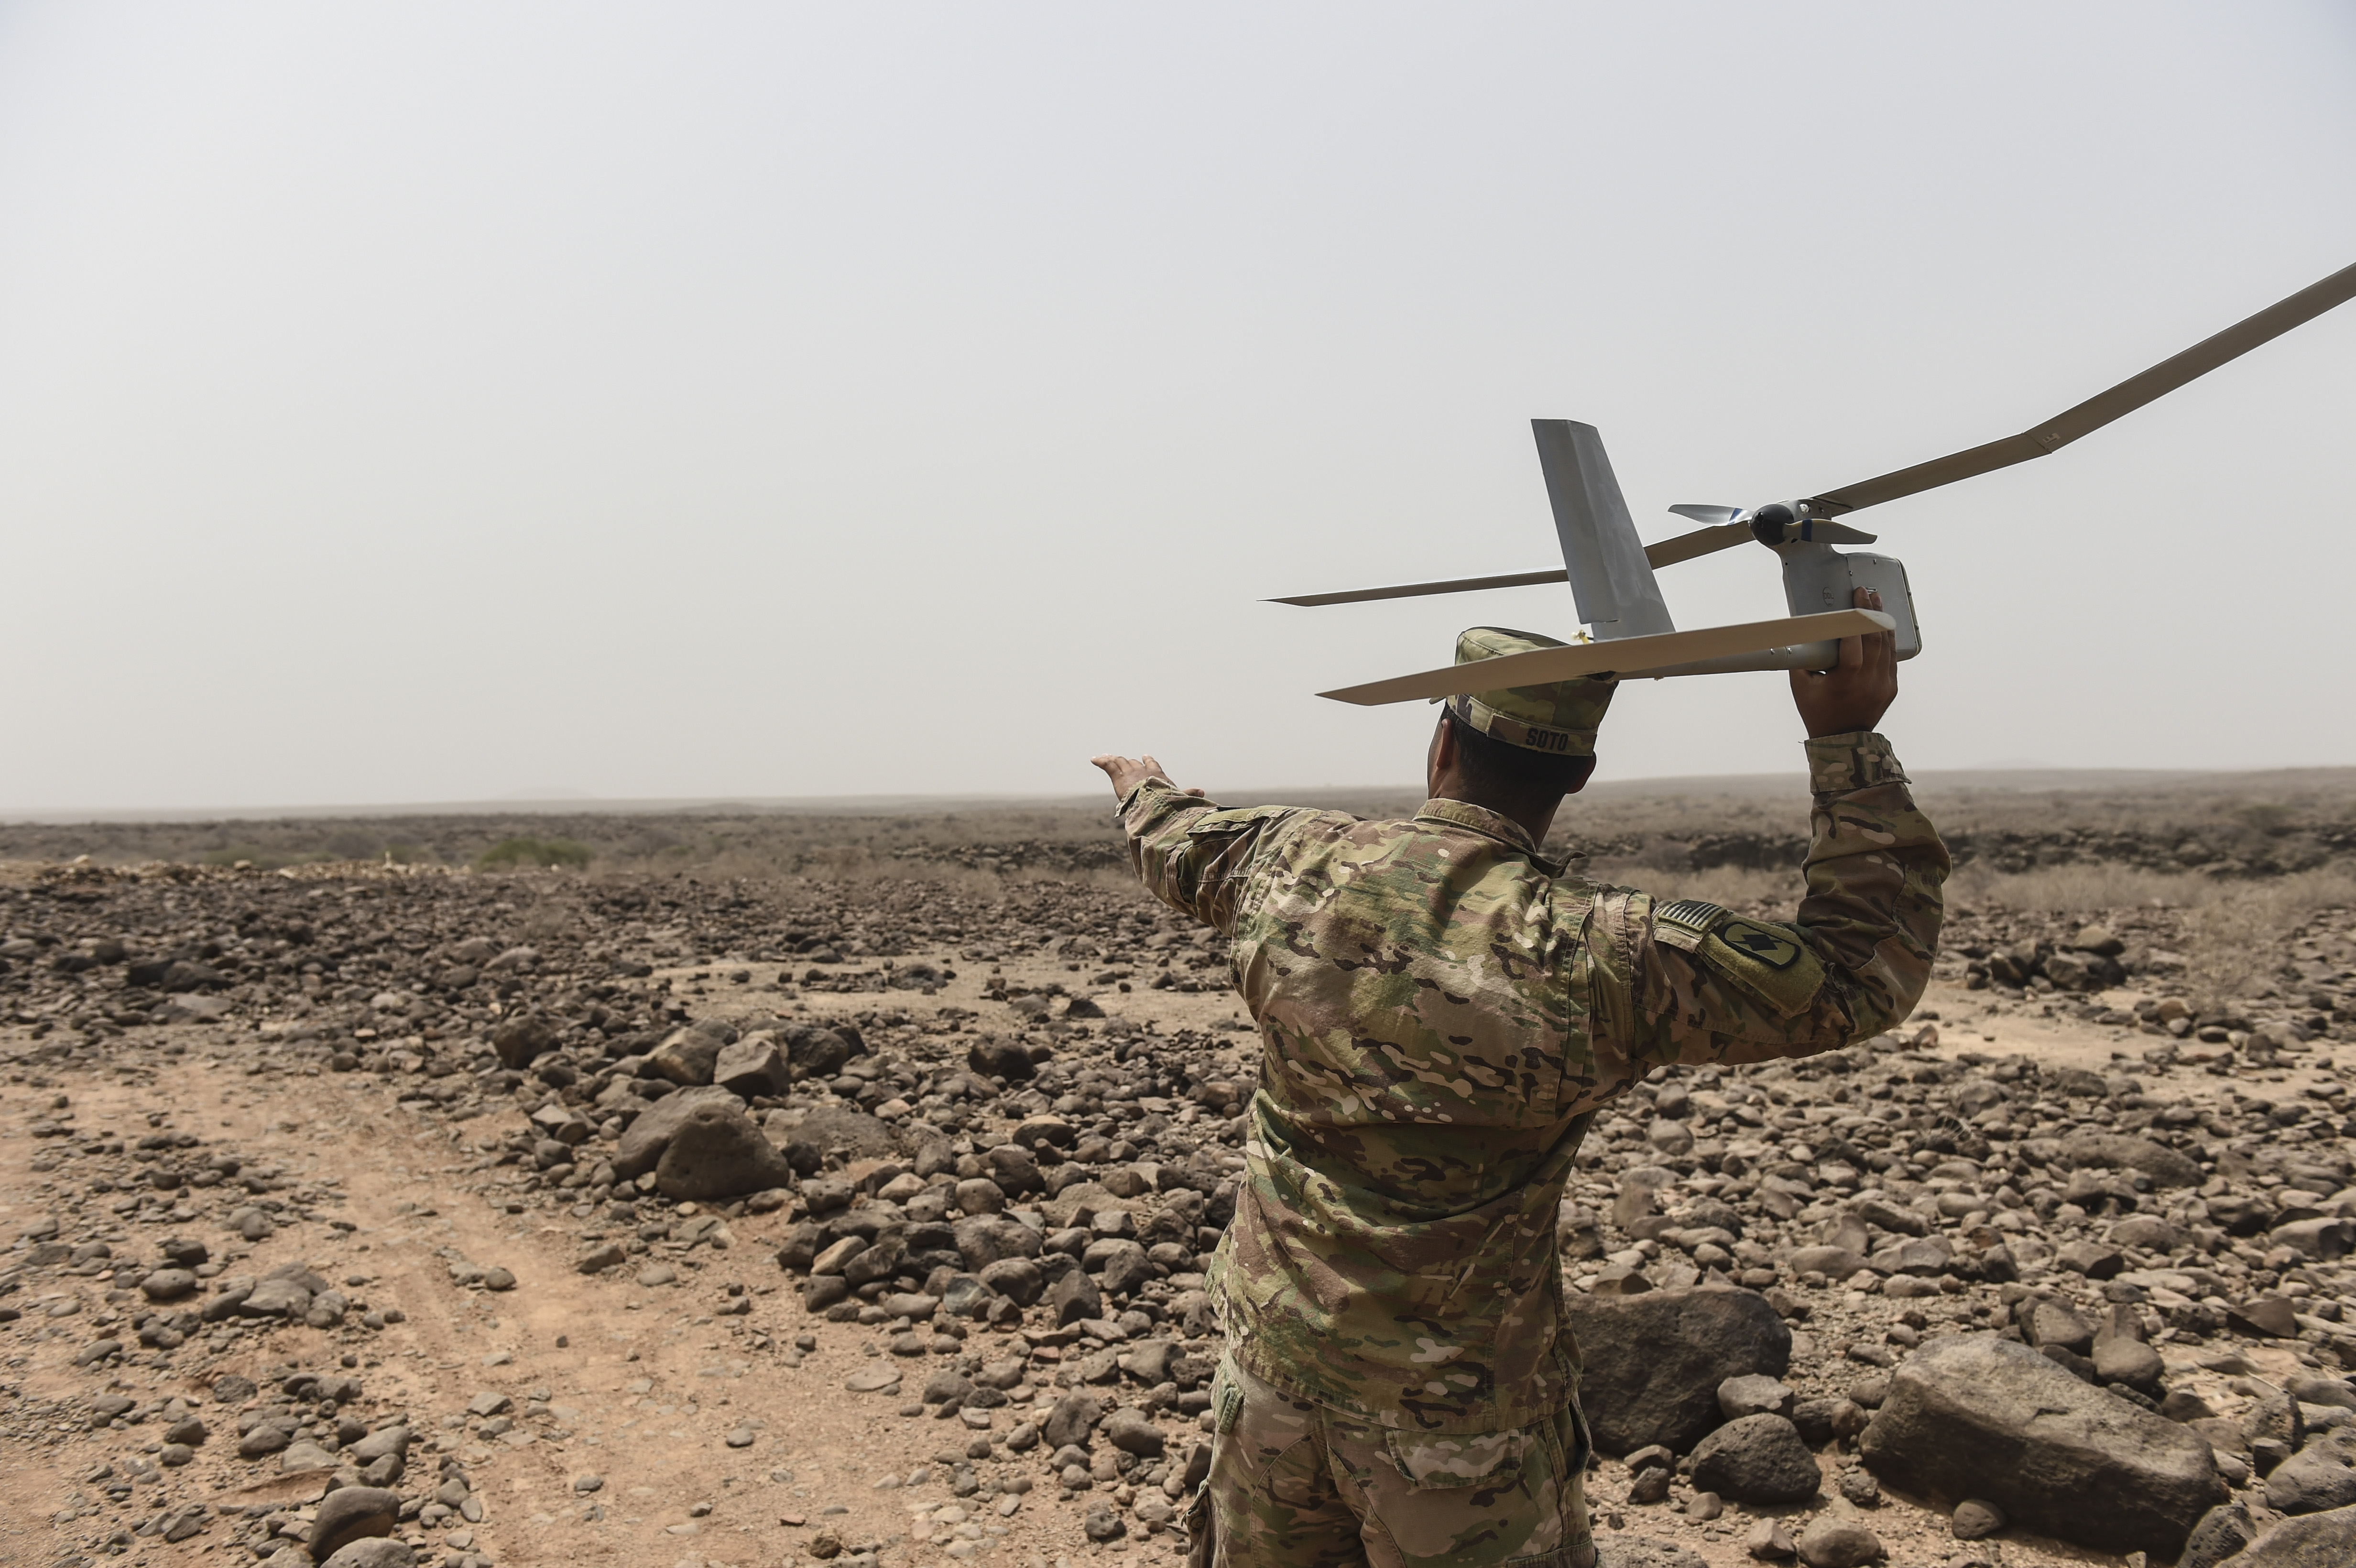 U.S. Army Spc. Enrique Soto, assigned to the 1st Battalion, 153rd Infantry Regiment, Task Force Warrior, an associated unit of Combined Joint Task Force - Horn of Africa, demonstrates a hand launch of a RQ-11 Raven remotely piloted aircraft in an airfield in southern Djibouti, Aug. 21, 2017. The demonstration was an effort to familiarize Djibouti Armed Forces members with the unmanned aerial vehicle system, clear up confusion about the Raven and other RPAs, and show the safe operation of the Raven. (U.S. Air Force photo by Staff Sgt. Eboni Prince)